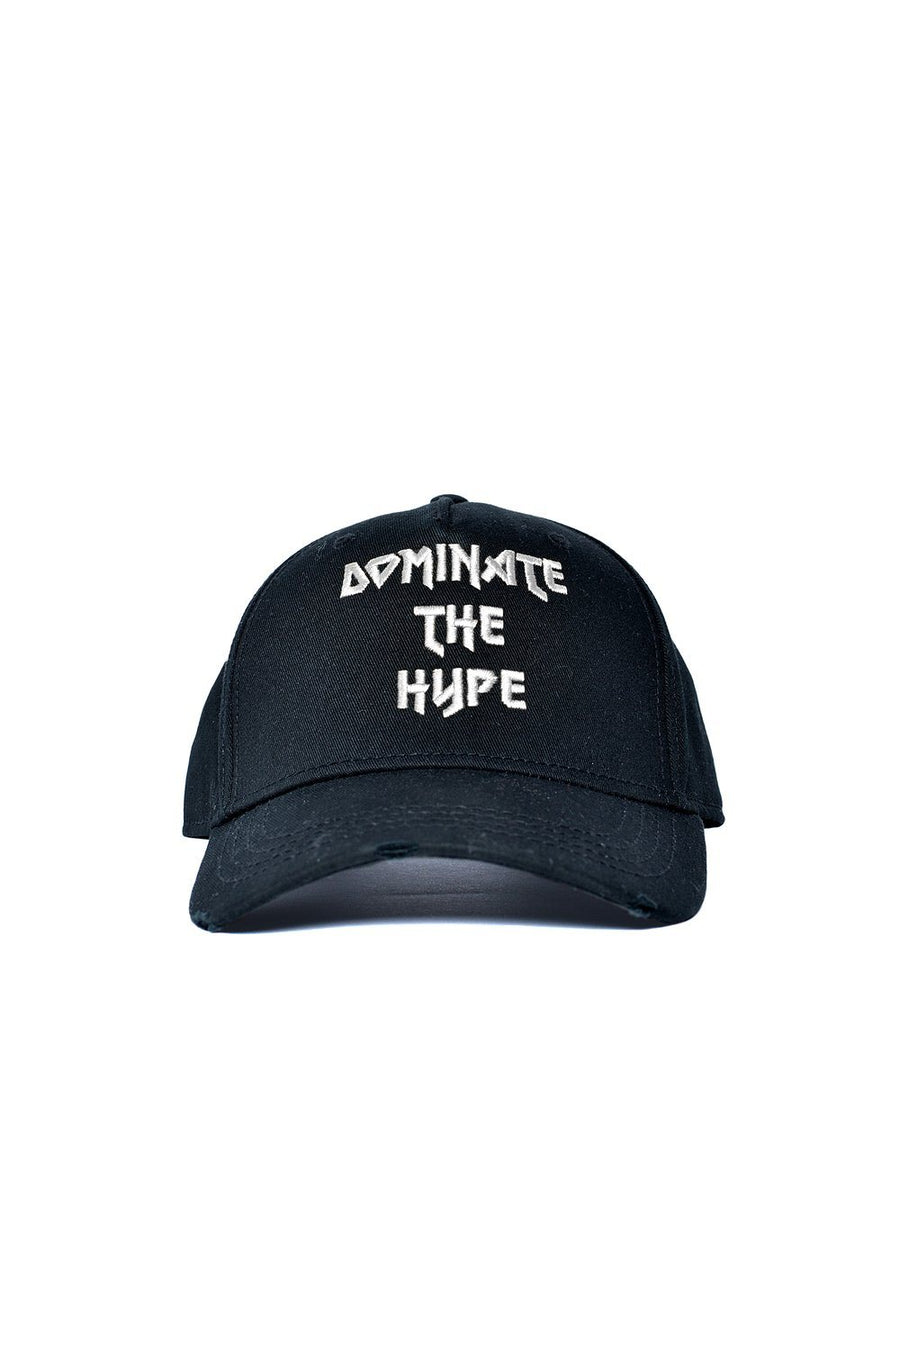 PEGADOR - Dominate the Hype - Dominate the hype Destroyed Cap Black Silver - PEGADOR - Dominate the Hype